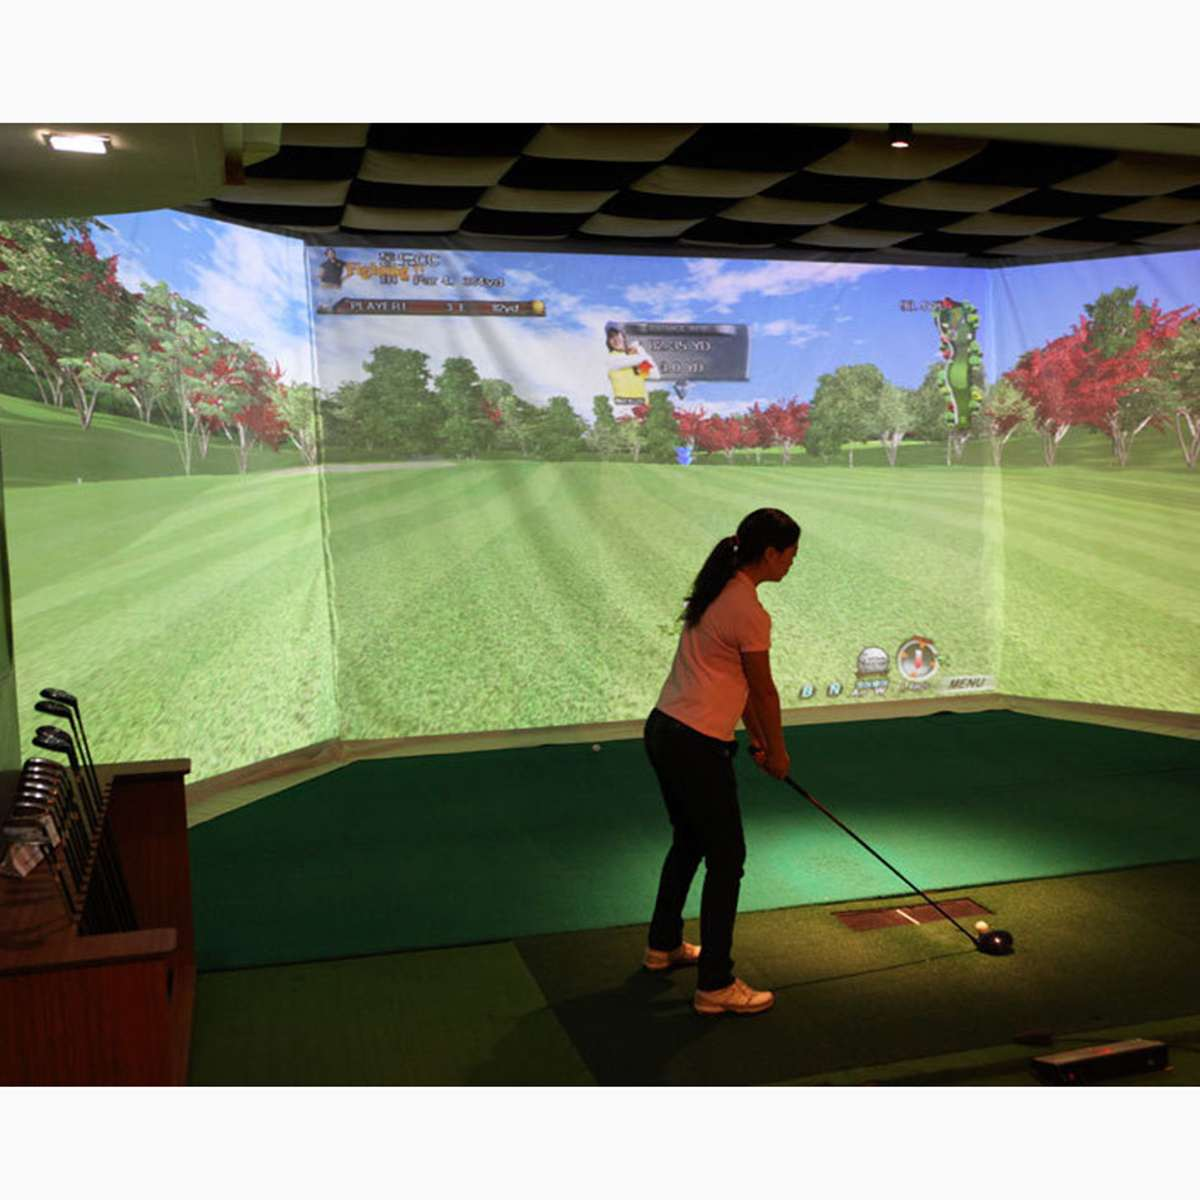 300x300cm/300x100cm Golf Ball Simulator Impact Display Projection Screen indoor White Cloth Material300x300cm/300x100cm Golf Ball Simulator Impact Display Projection Screen indoor White Cloth Material